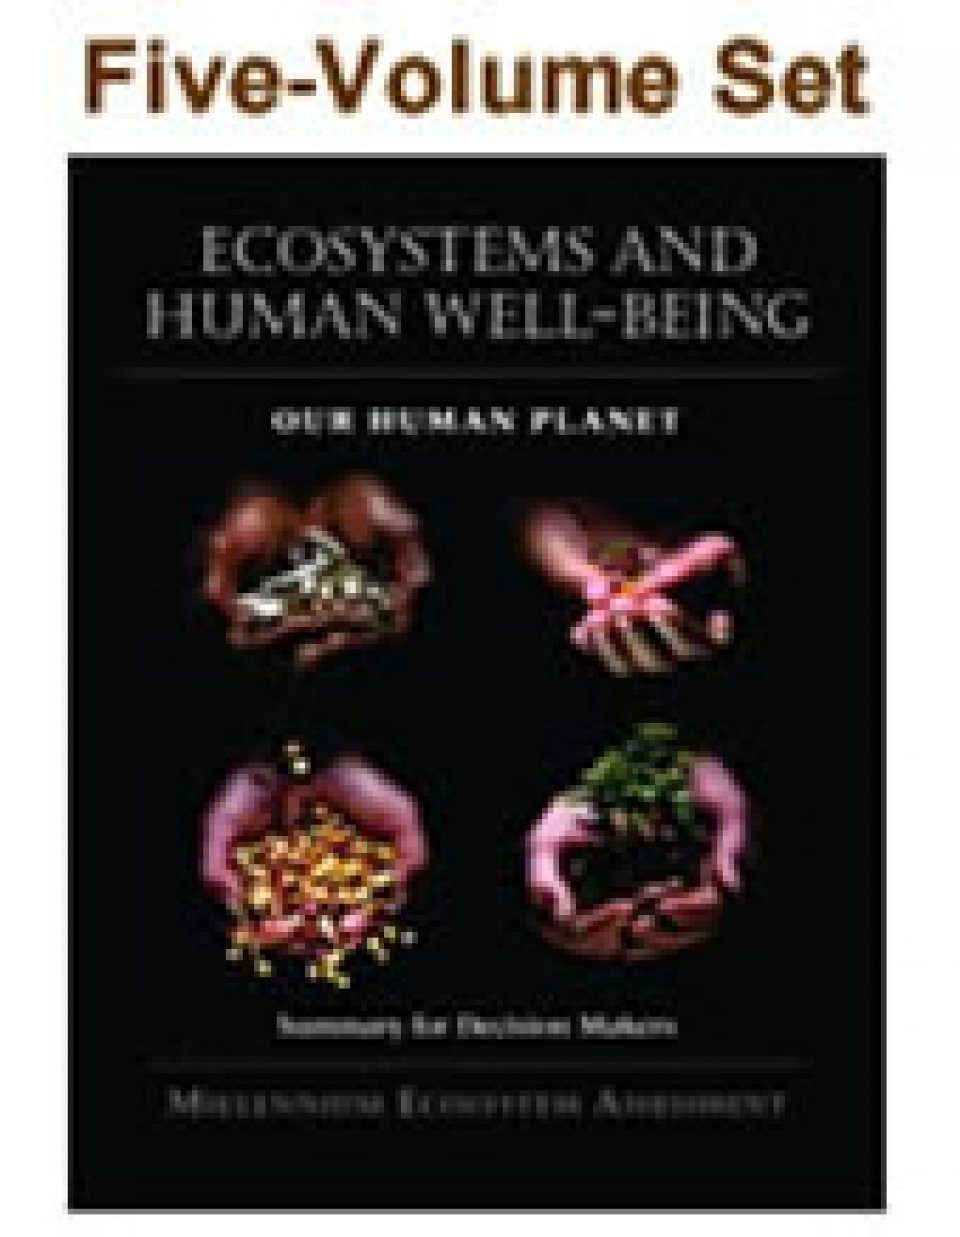 Millennium Ecosystem Assessment (5-Volume Set)